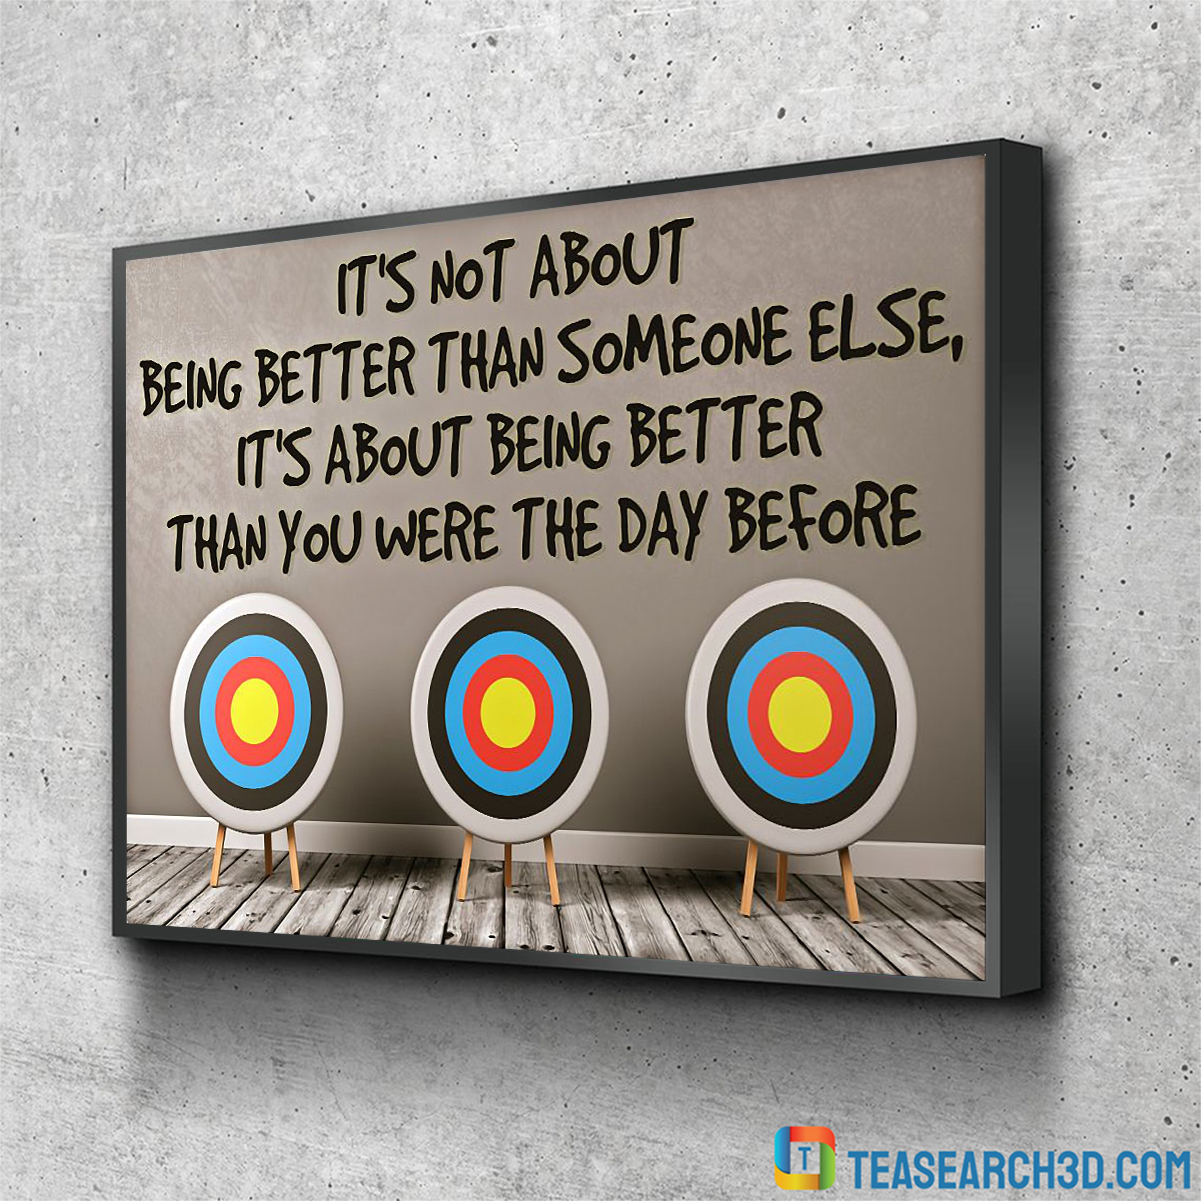 Archery Archers it's not about being better than someone else poster